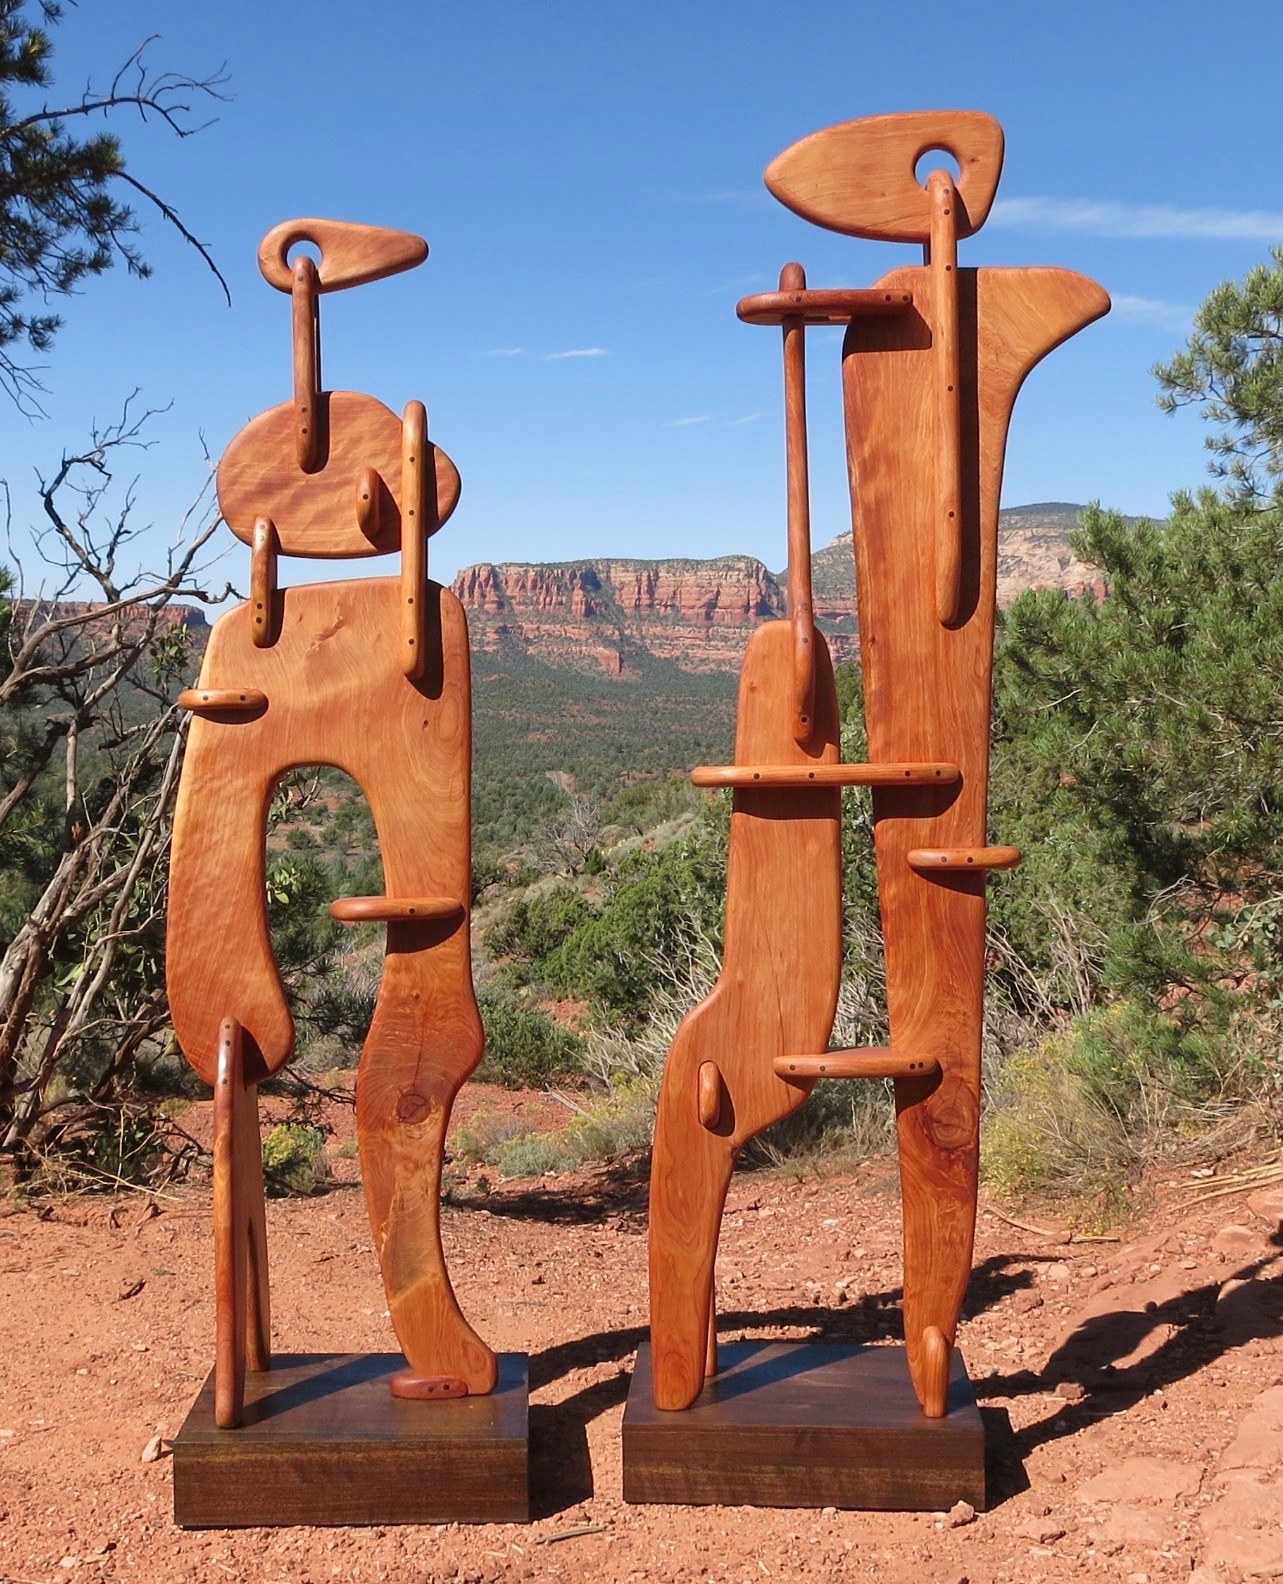 The Couple by  Mike Medow - Masterpiece Online